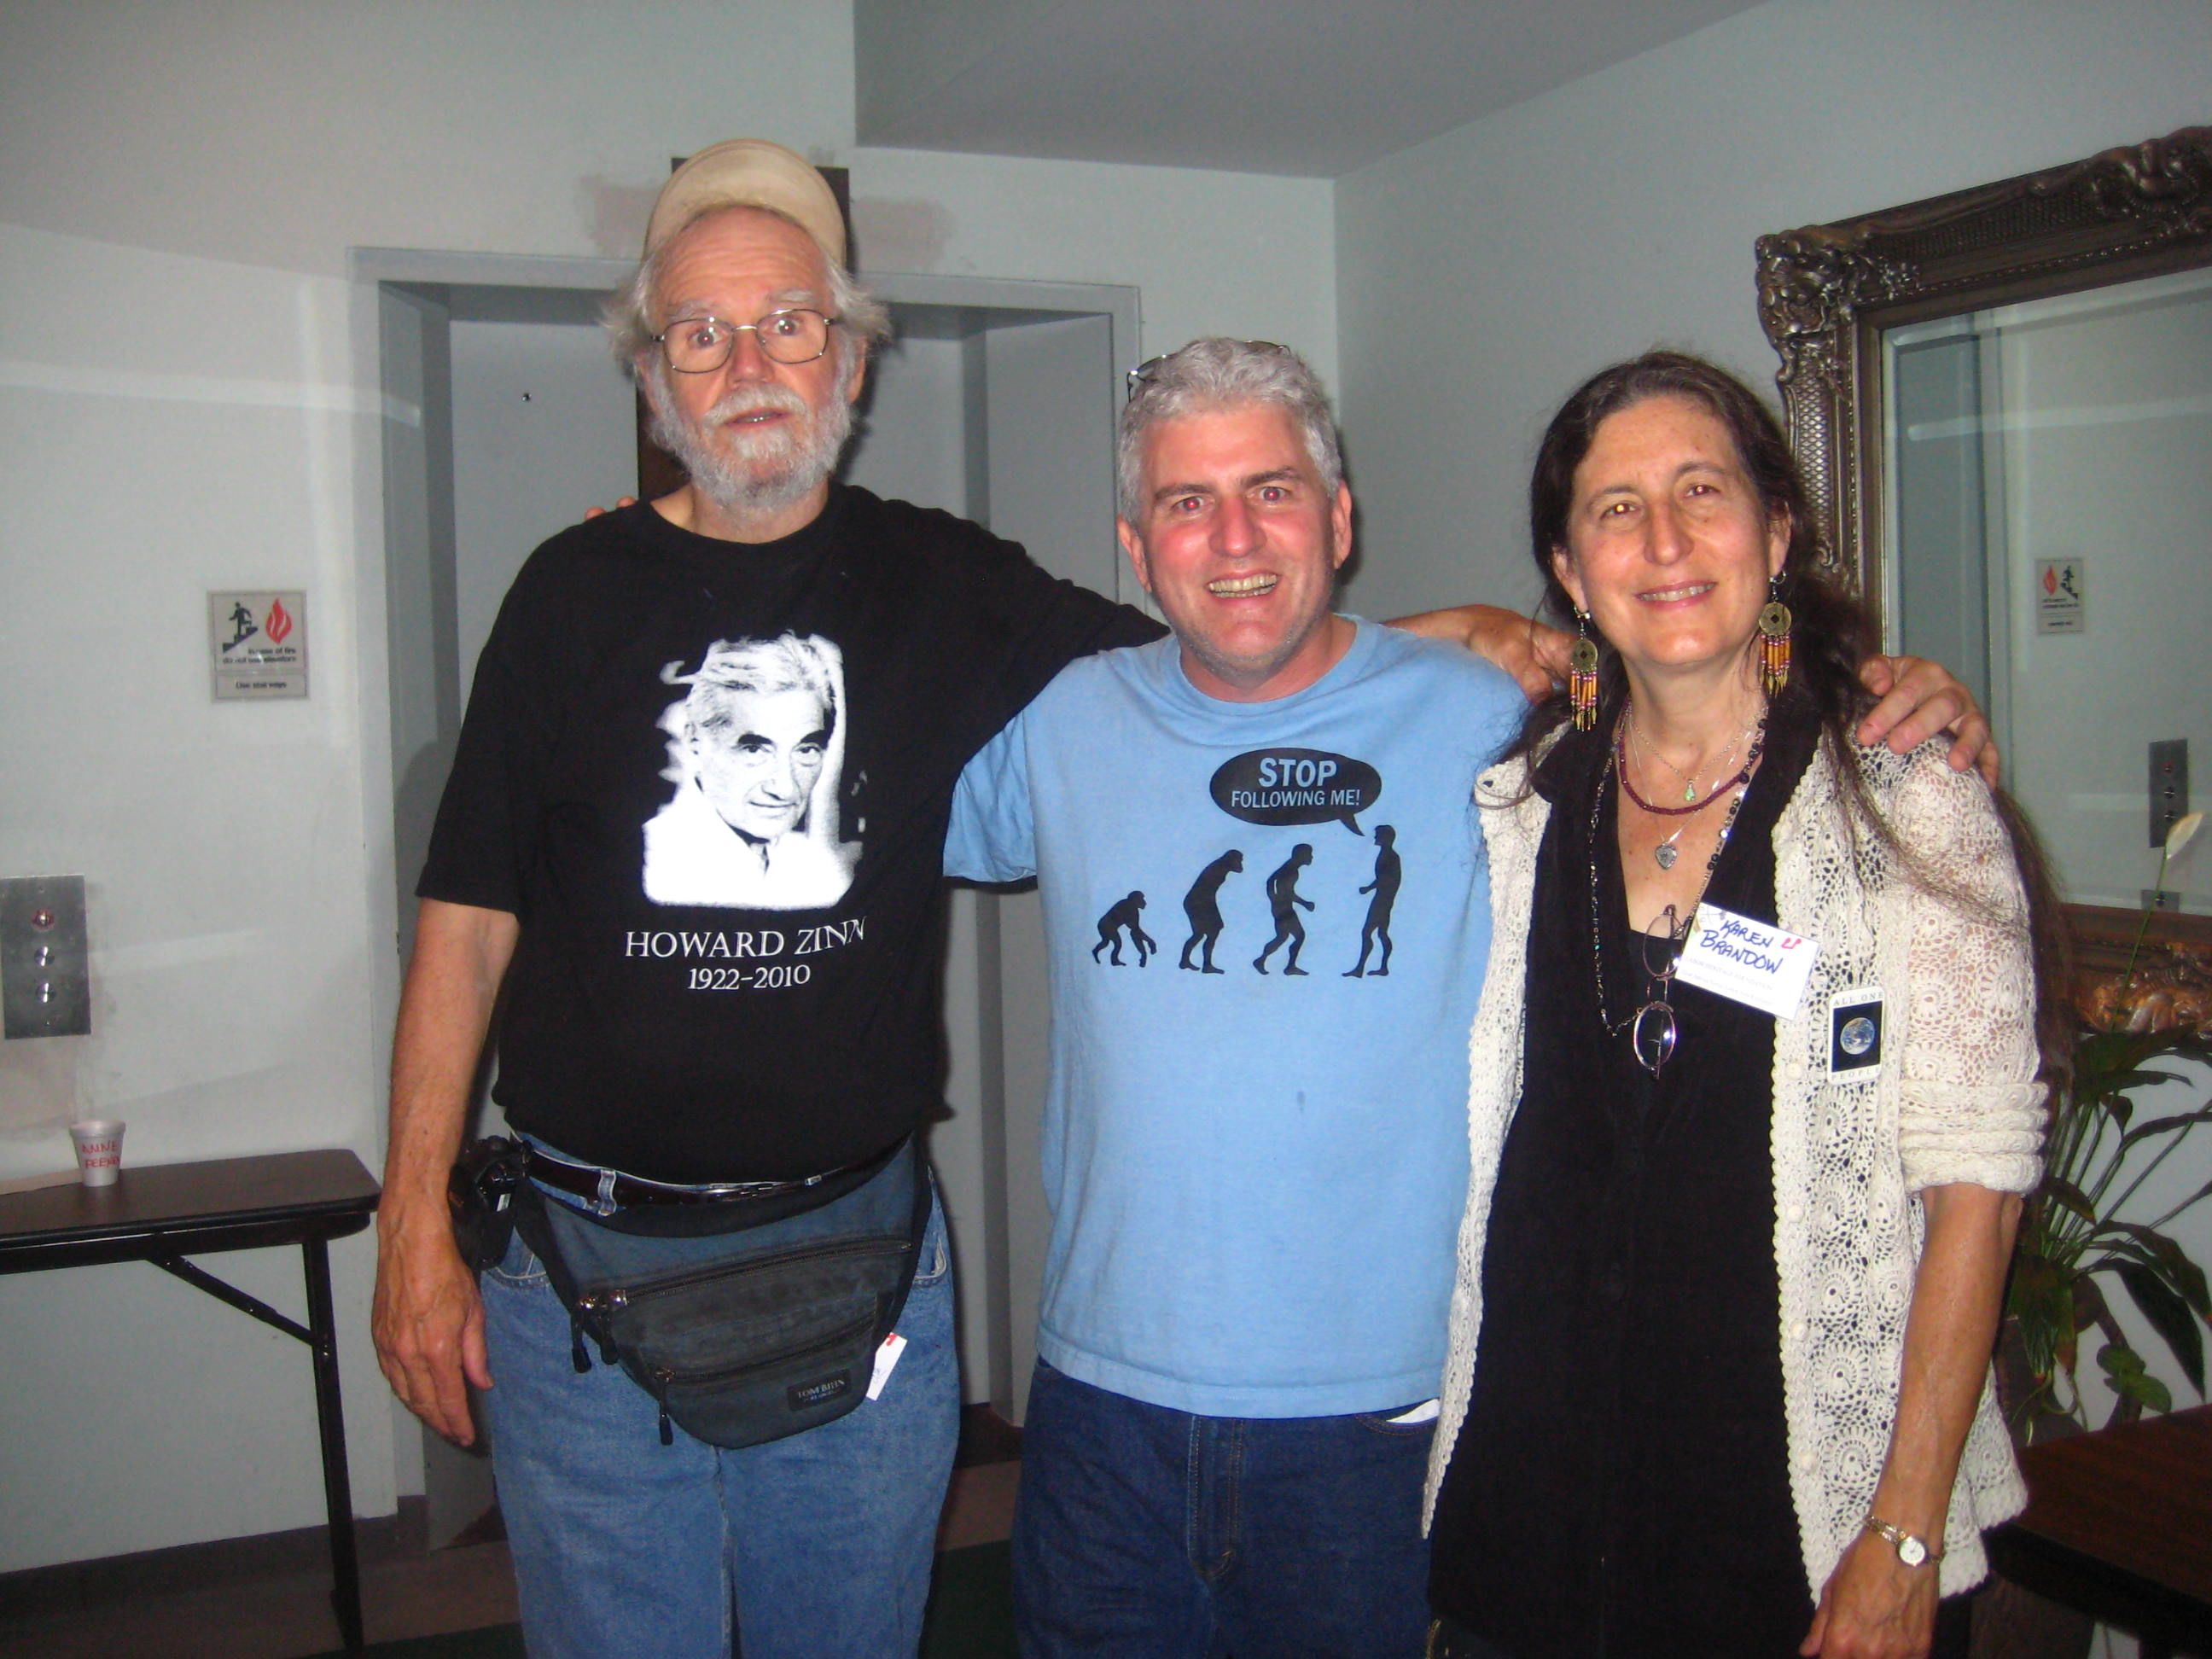 Charlie King, Steve Deasy and Karen Brandow at Great Labor Arts Exchange, Detroit, 2010